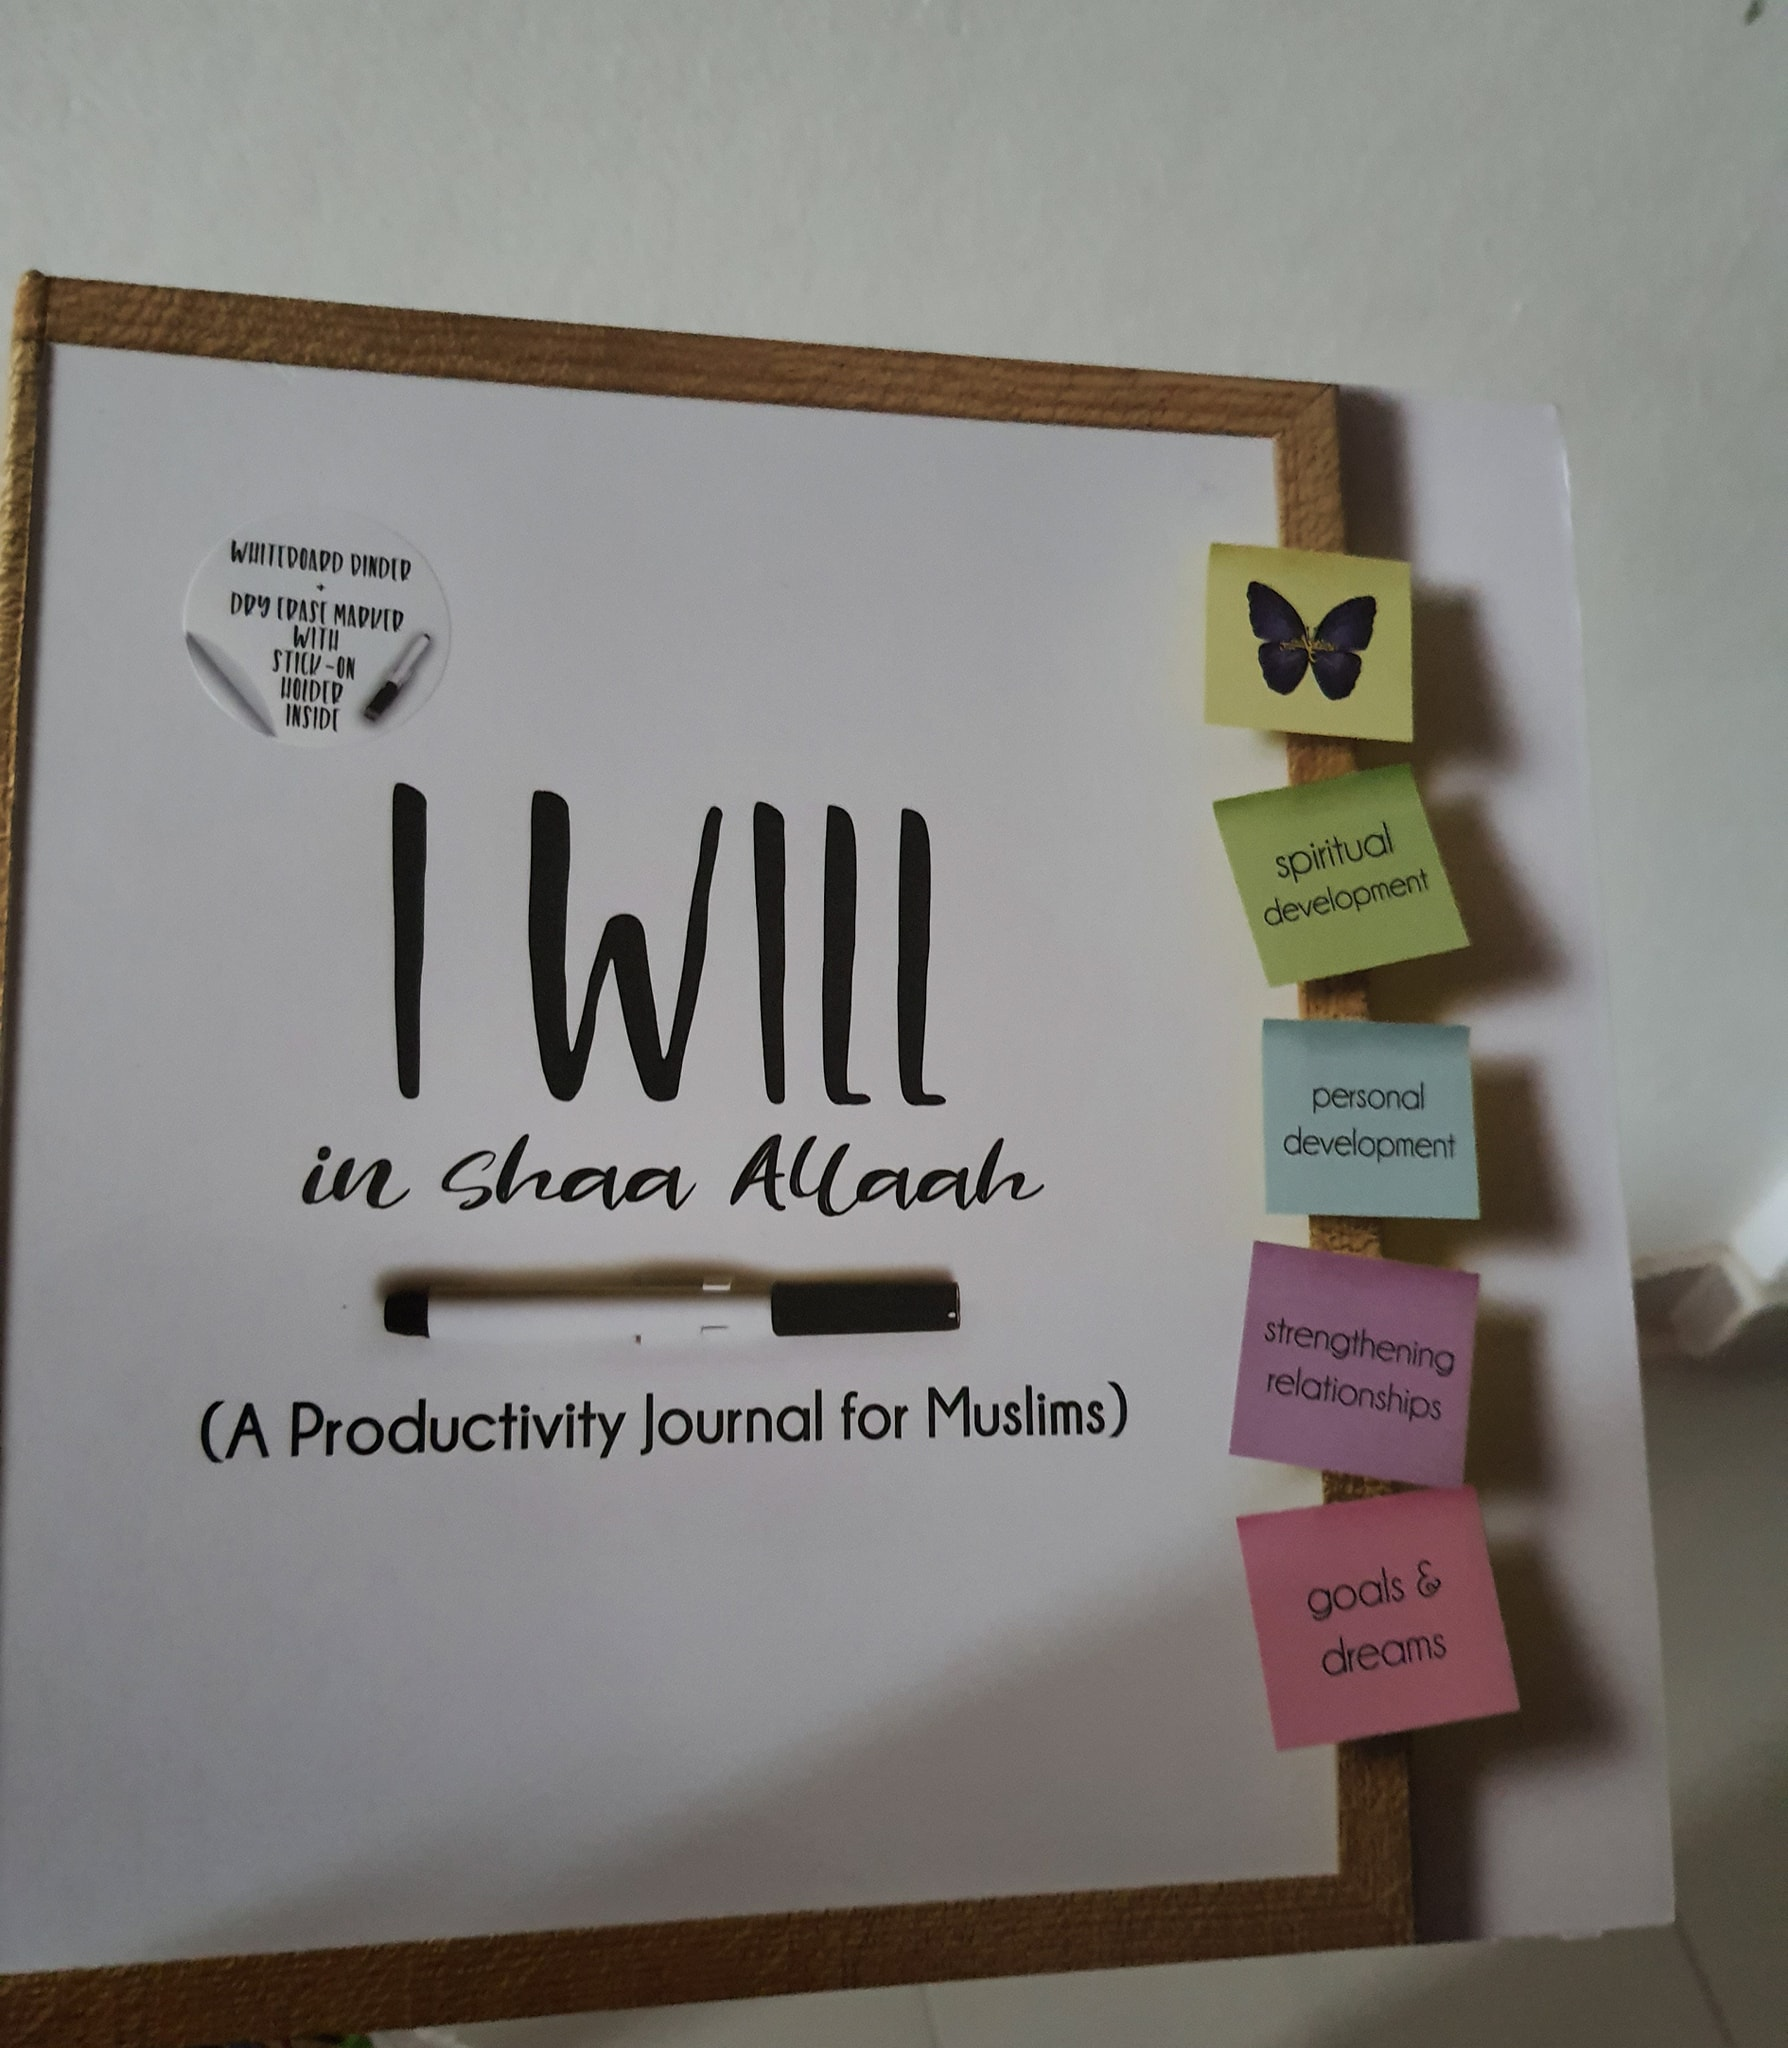 Productivity journal